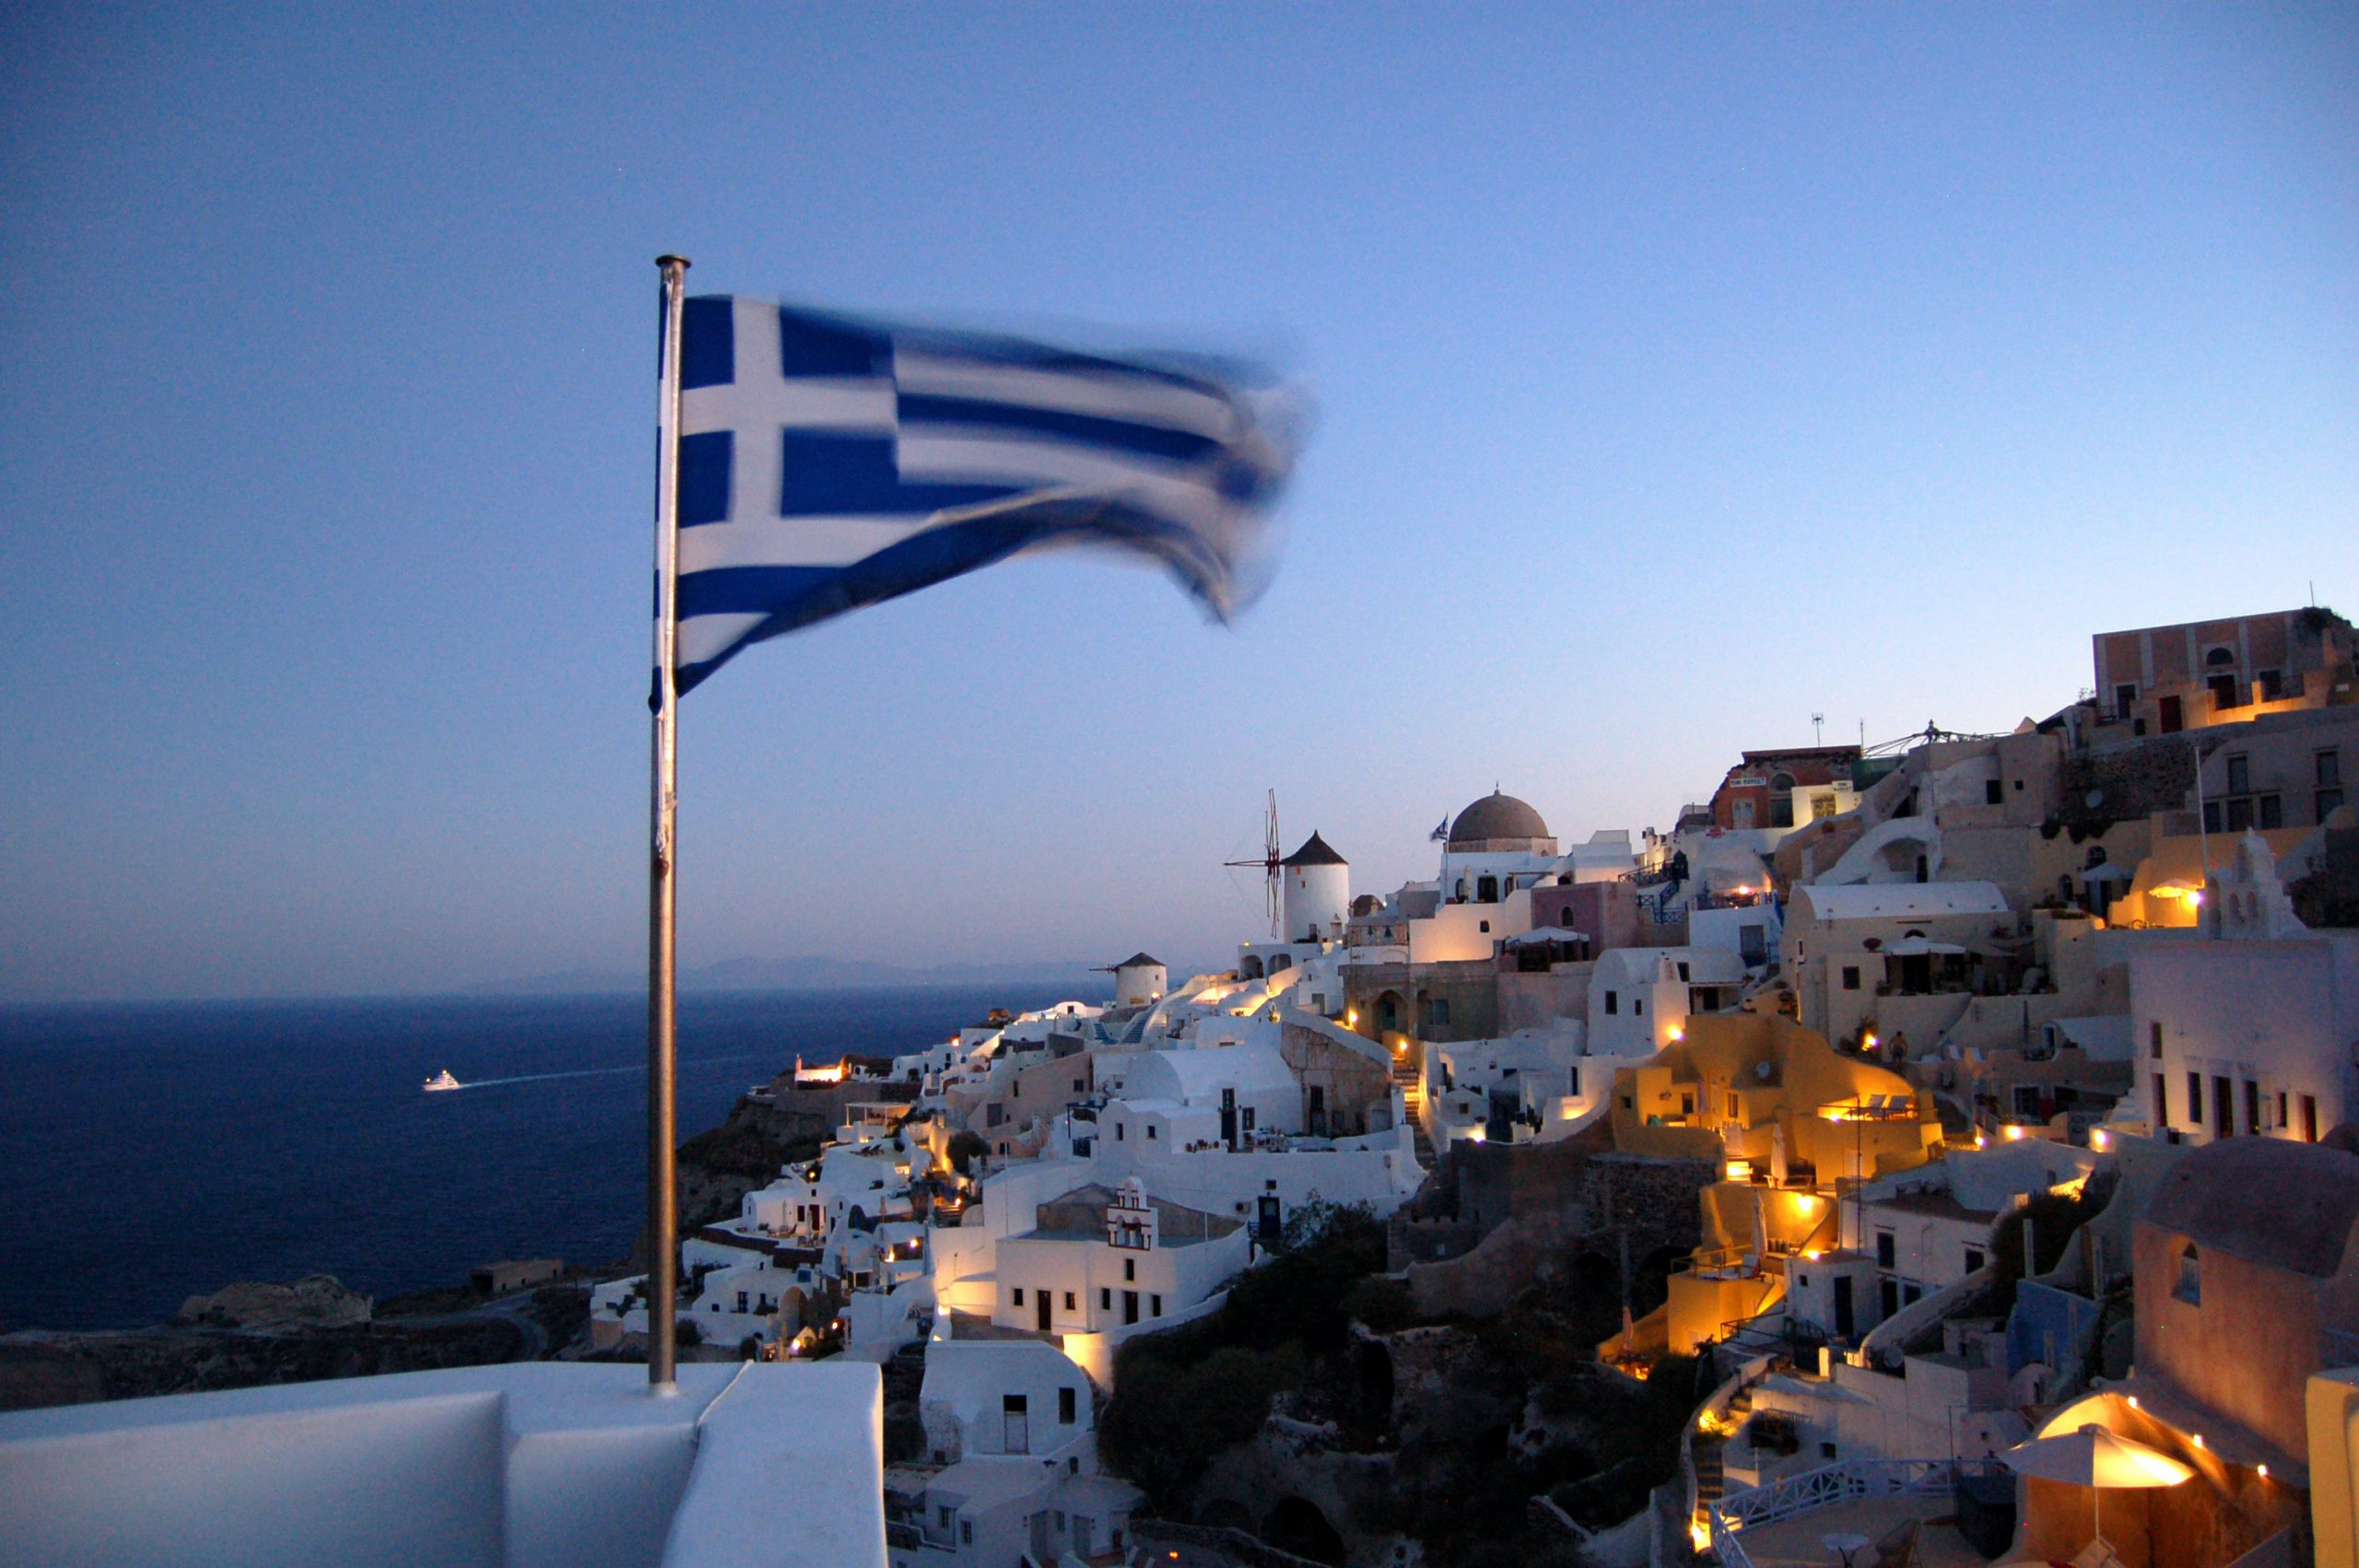 Night skyline in Greece with flag